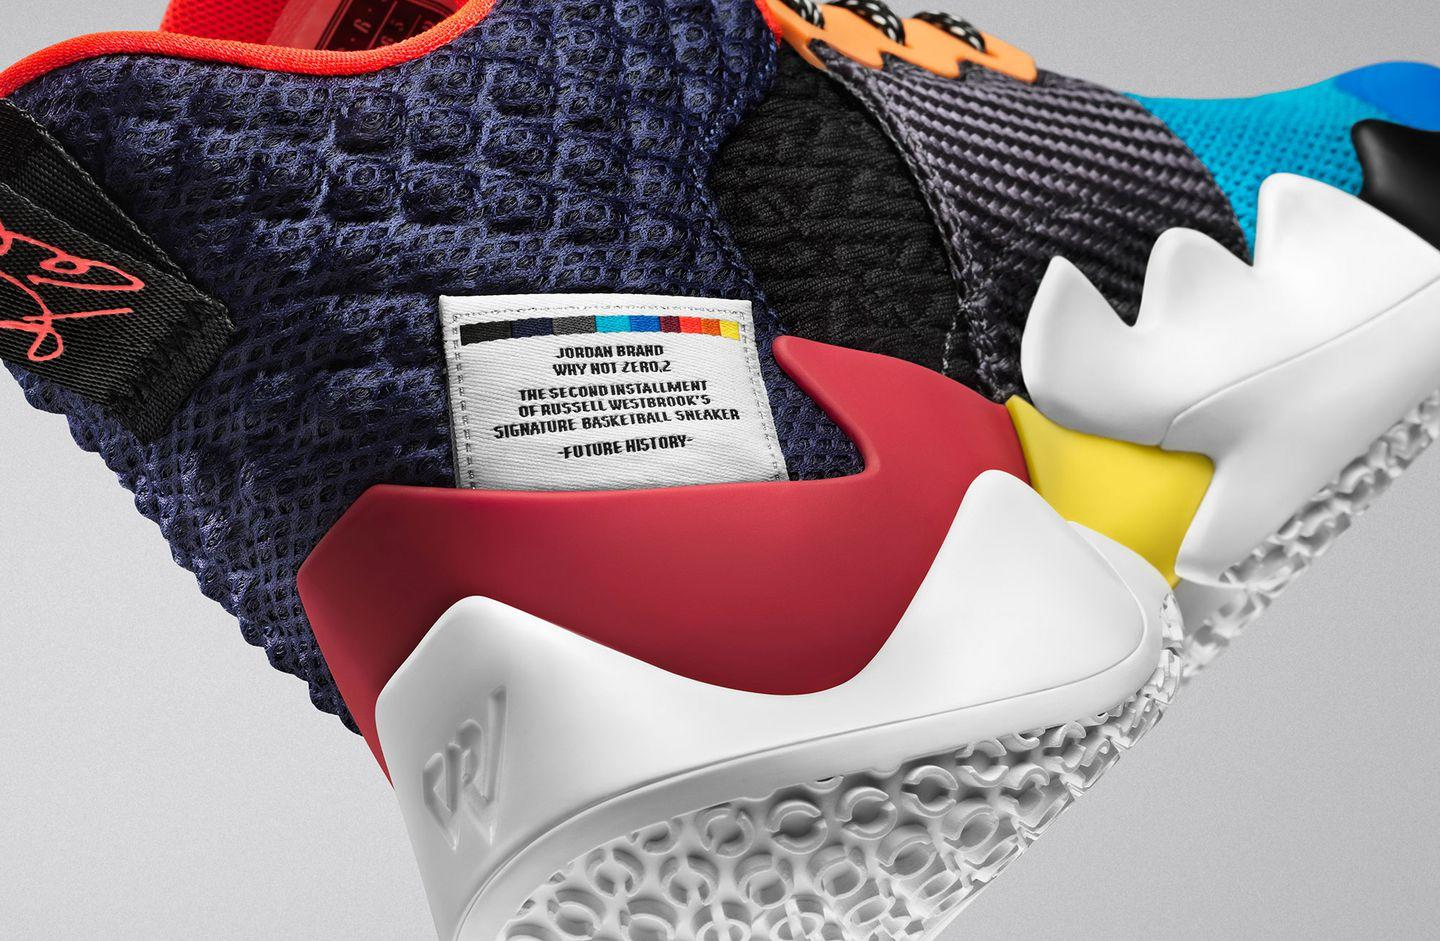 b7eeff117 Russell Westbrook s New Jordan Sneakers Are All About  Owning the Chaos